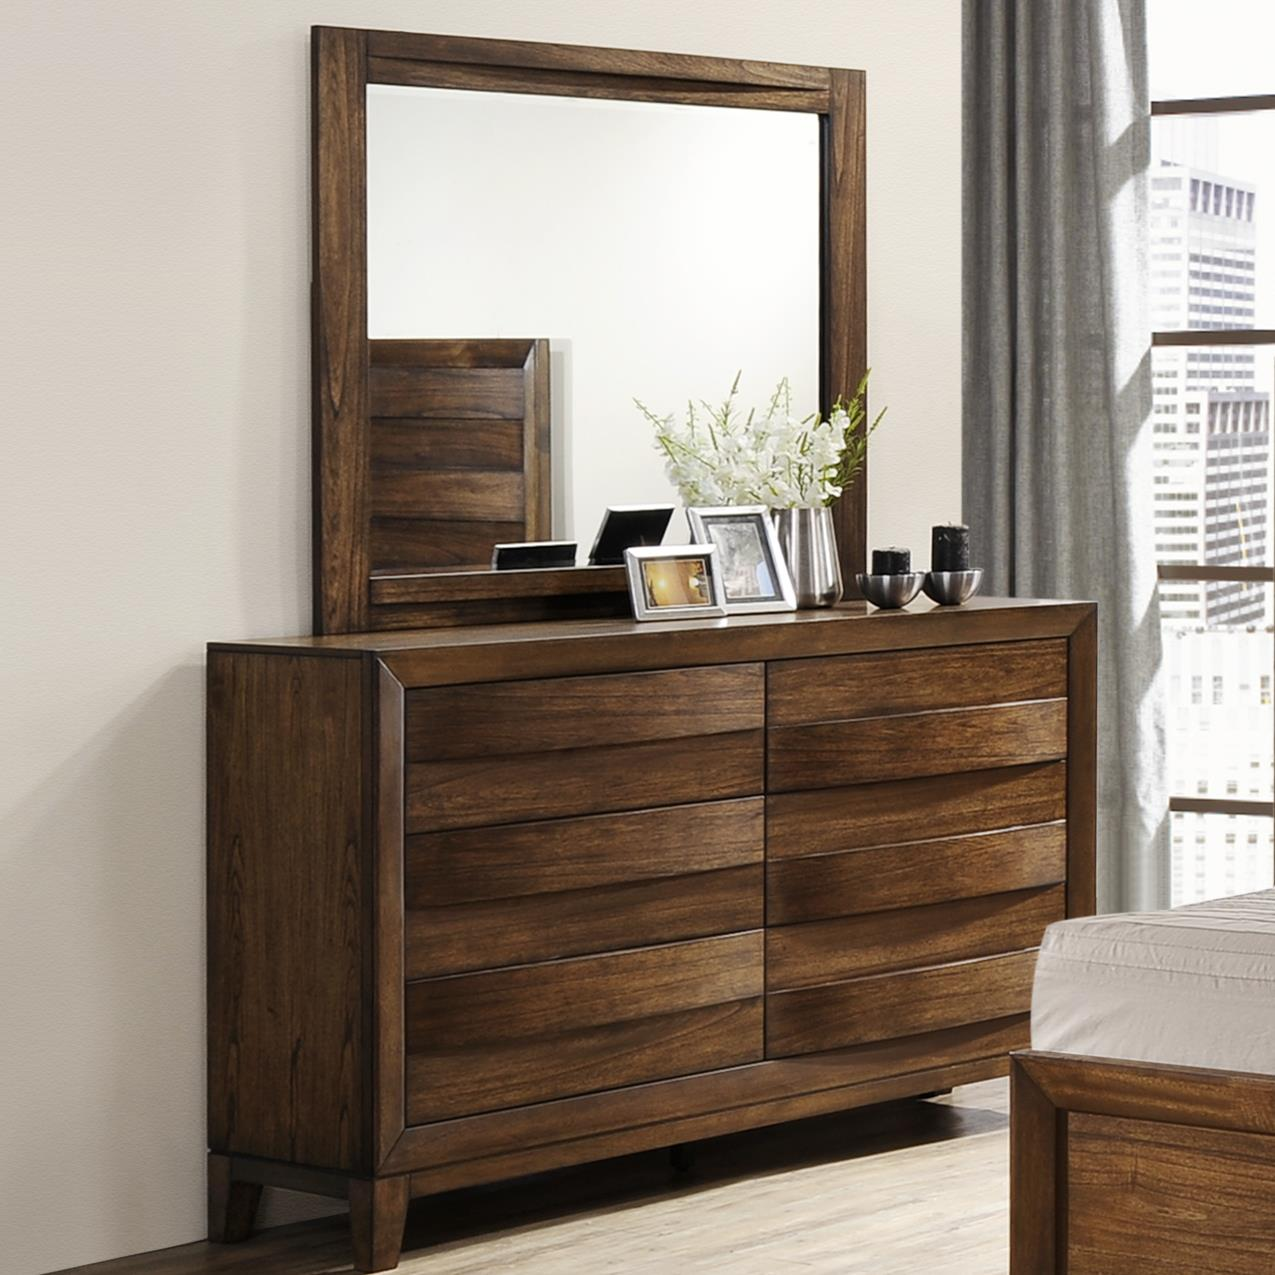 Crown Mark Kelton Dresser and Mirror Set - Item Number: B6900-1+11